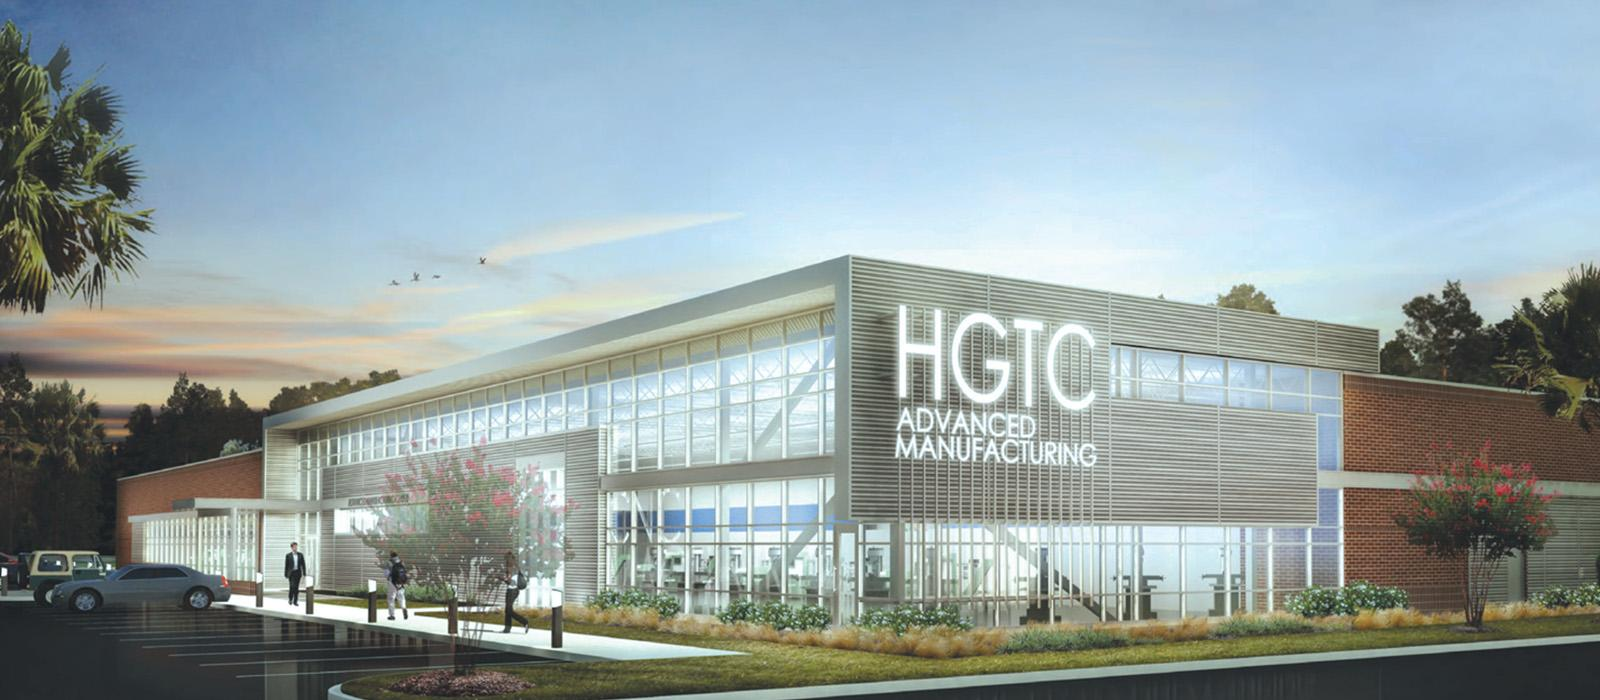 New Advanced Manufacturing Centers Coming To Hgtc